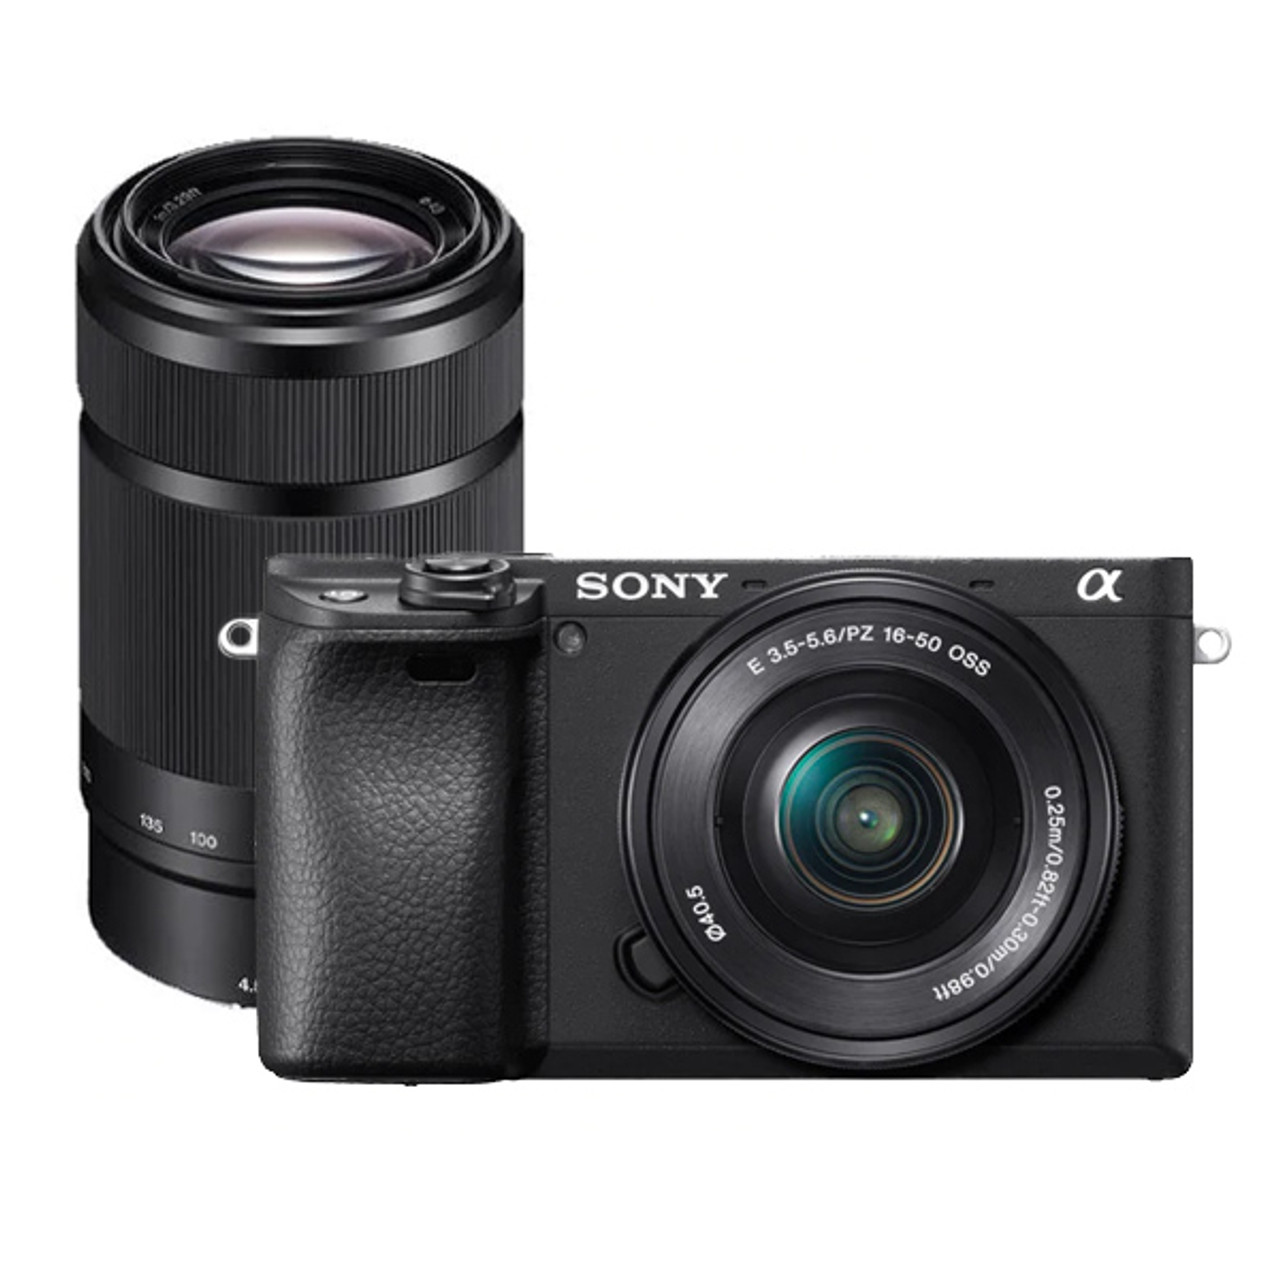 Sony A6400 16-50mm and 55-210mm Lens Kit